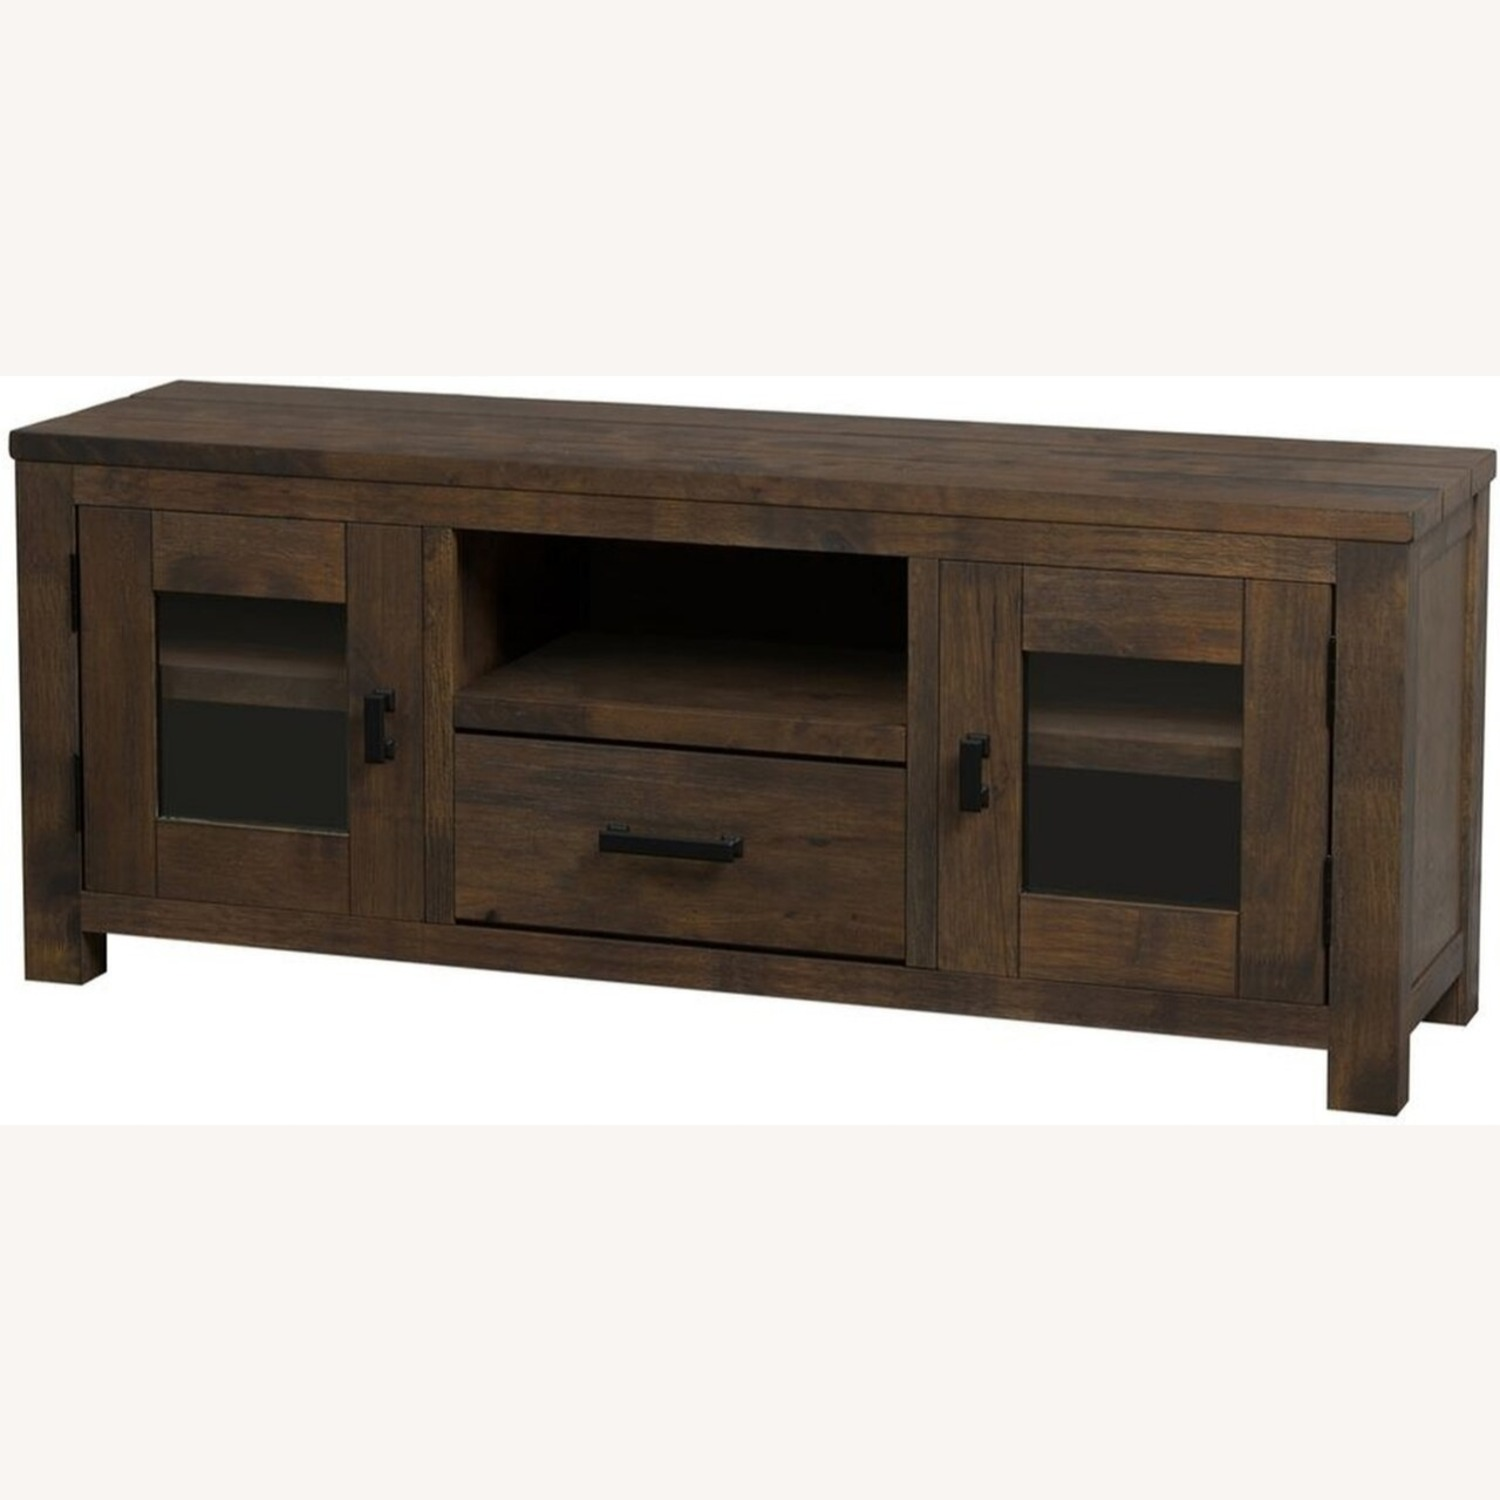 75-Inch TV Console In Rustic Golden Brown - image-1